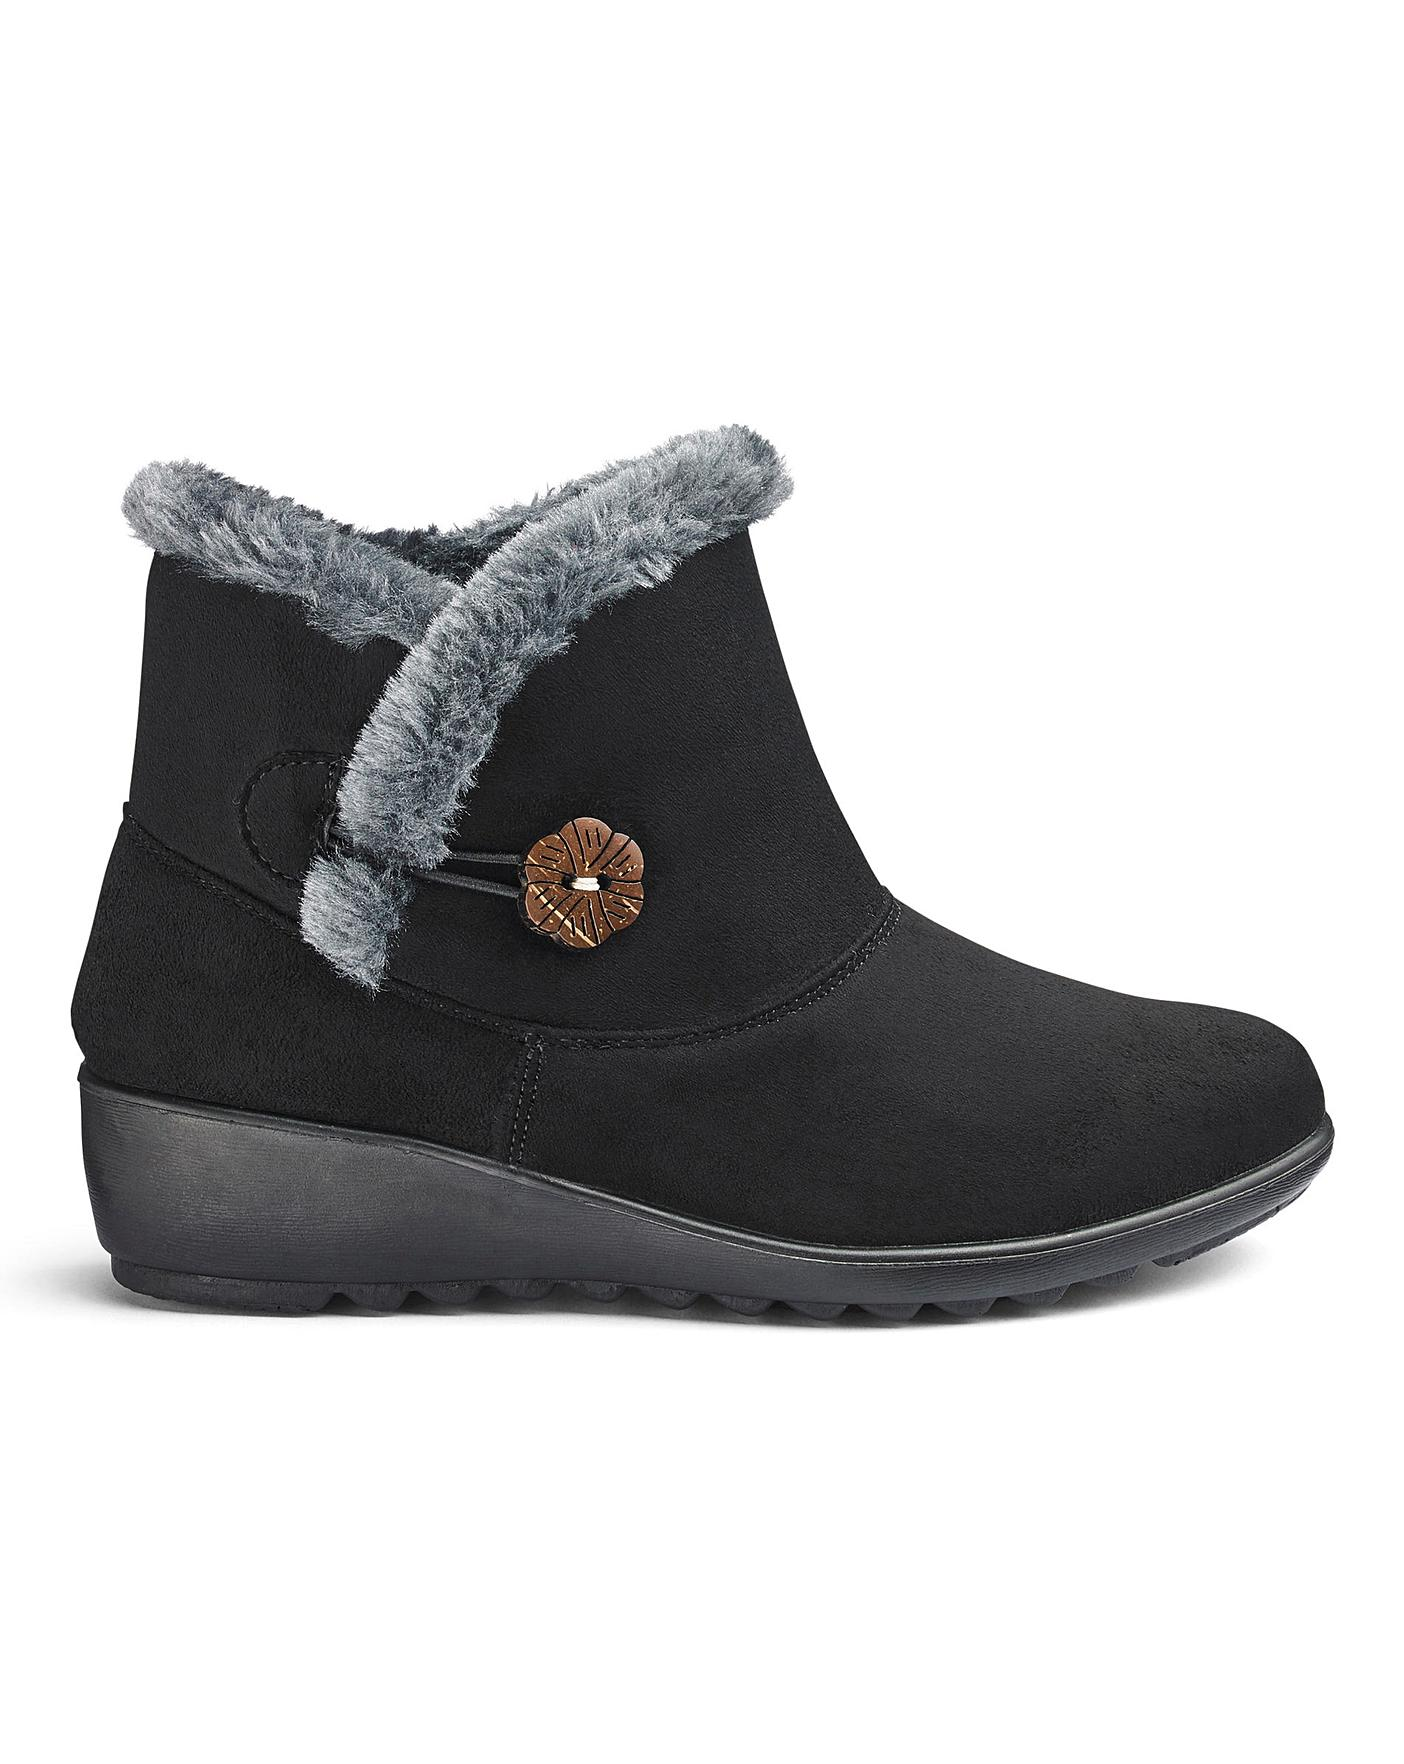 Cushion Walk Ankle Boots EEE Fit | J D